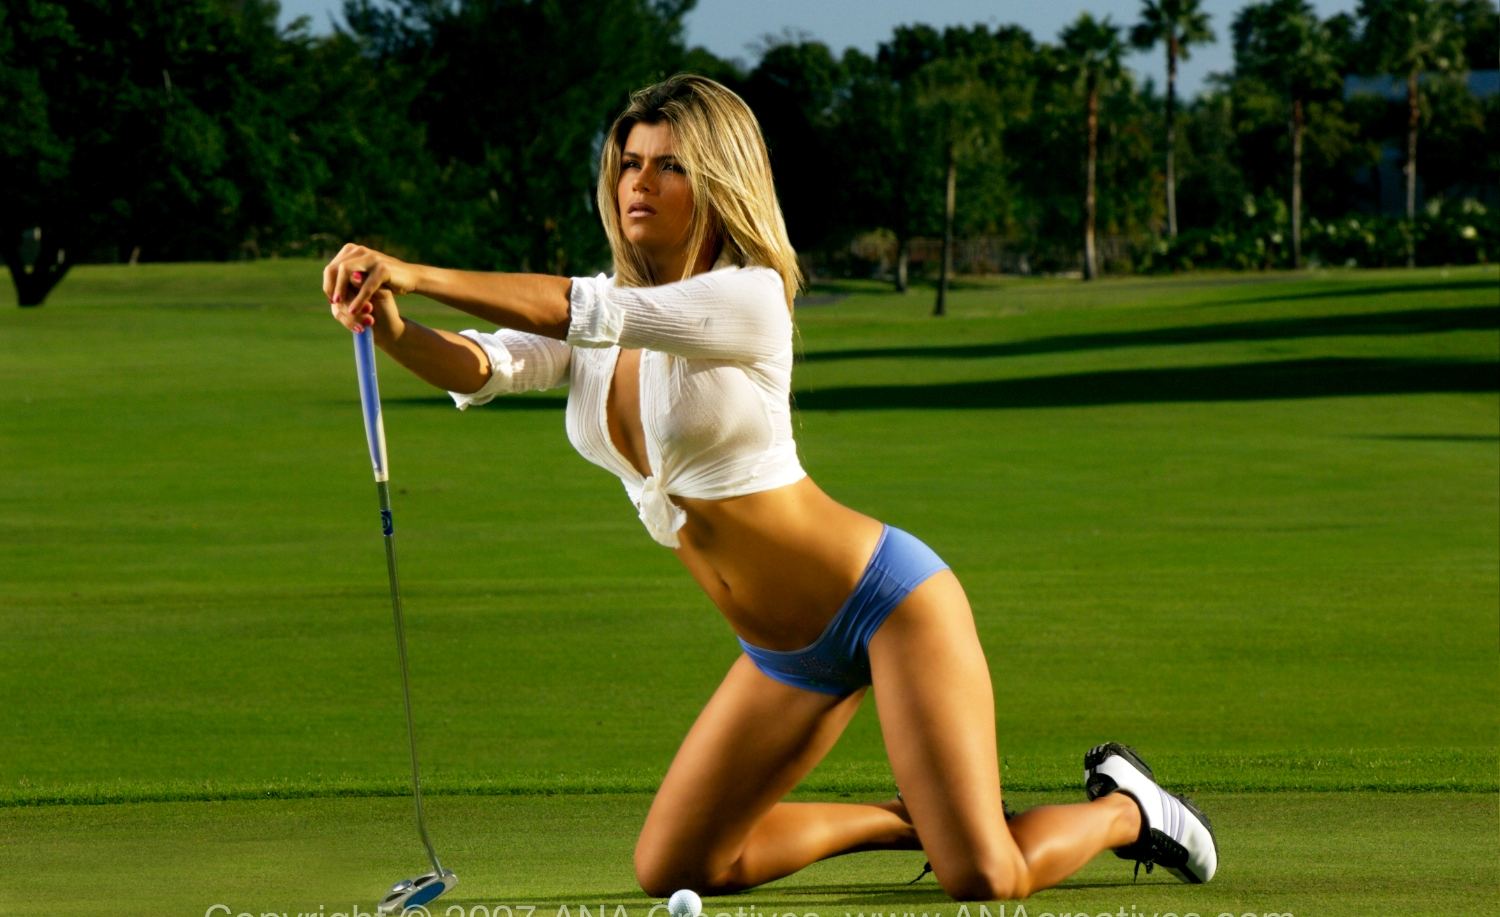 Golf hot hd sex advise you